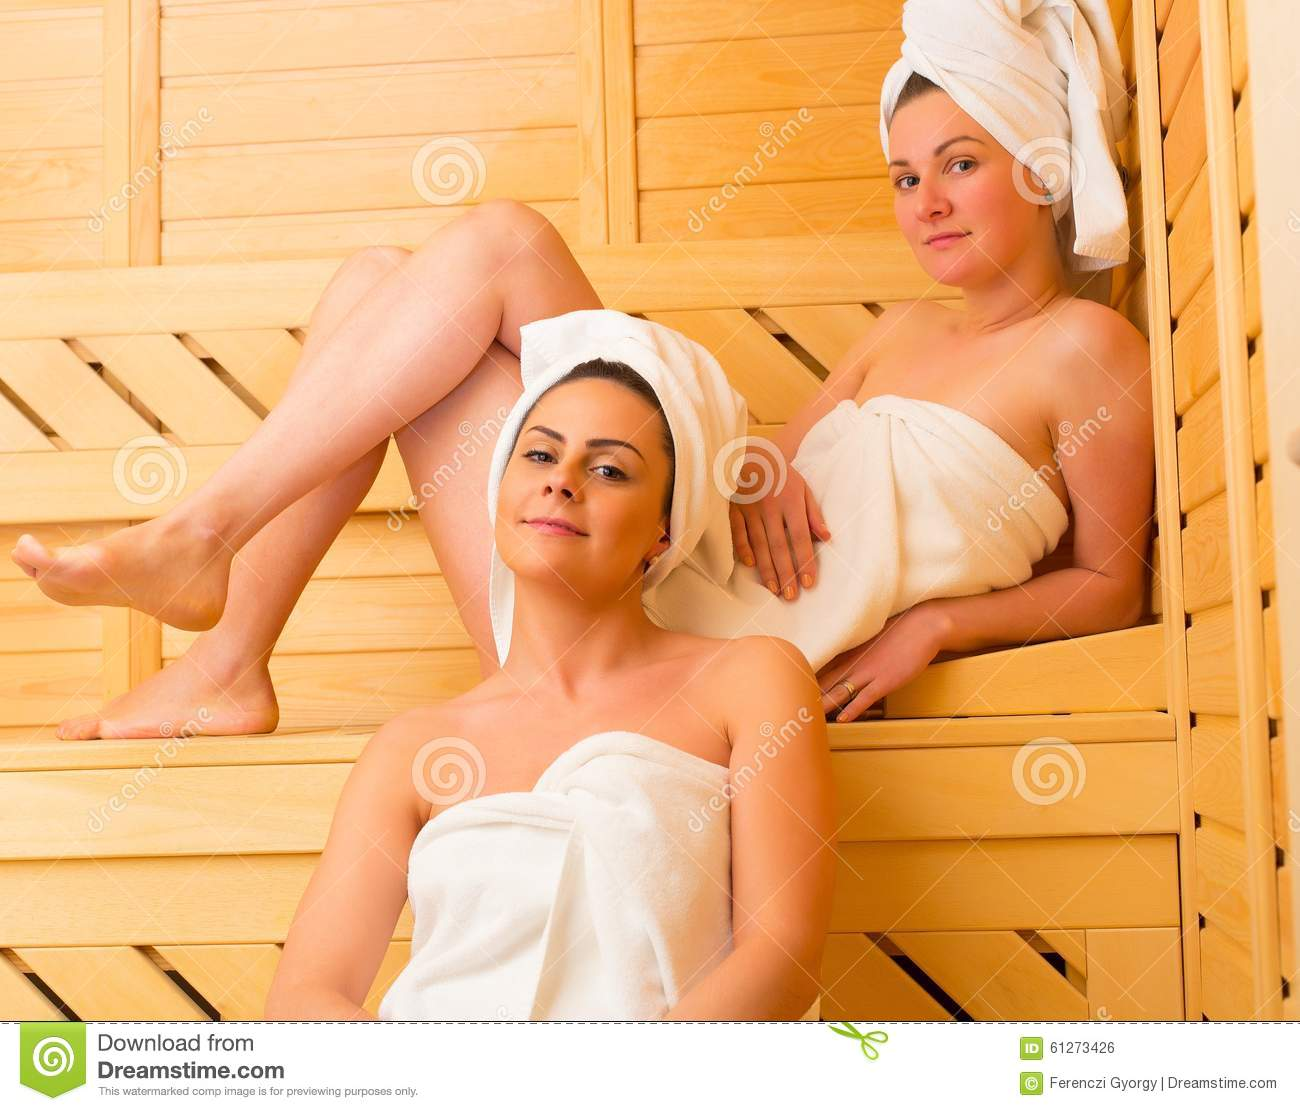 Opinion Lesbians in the sauna